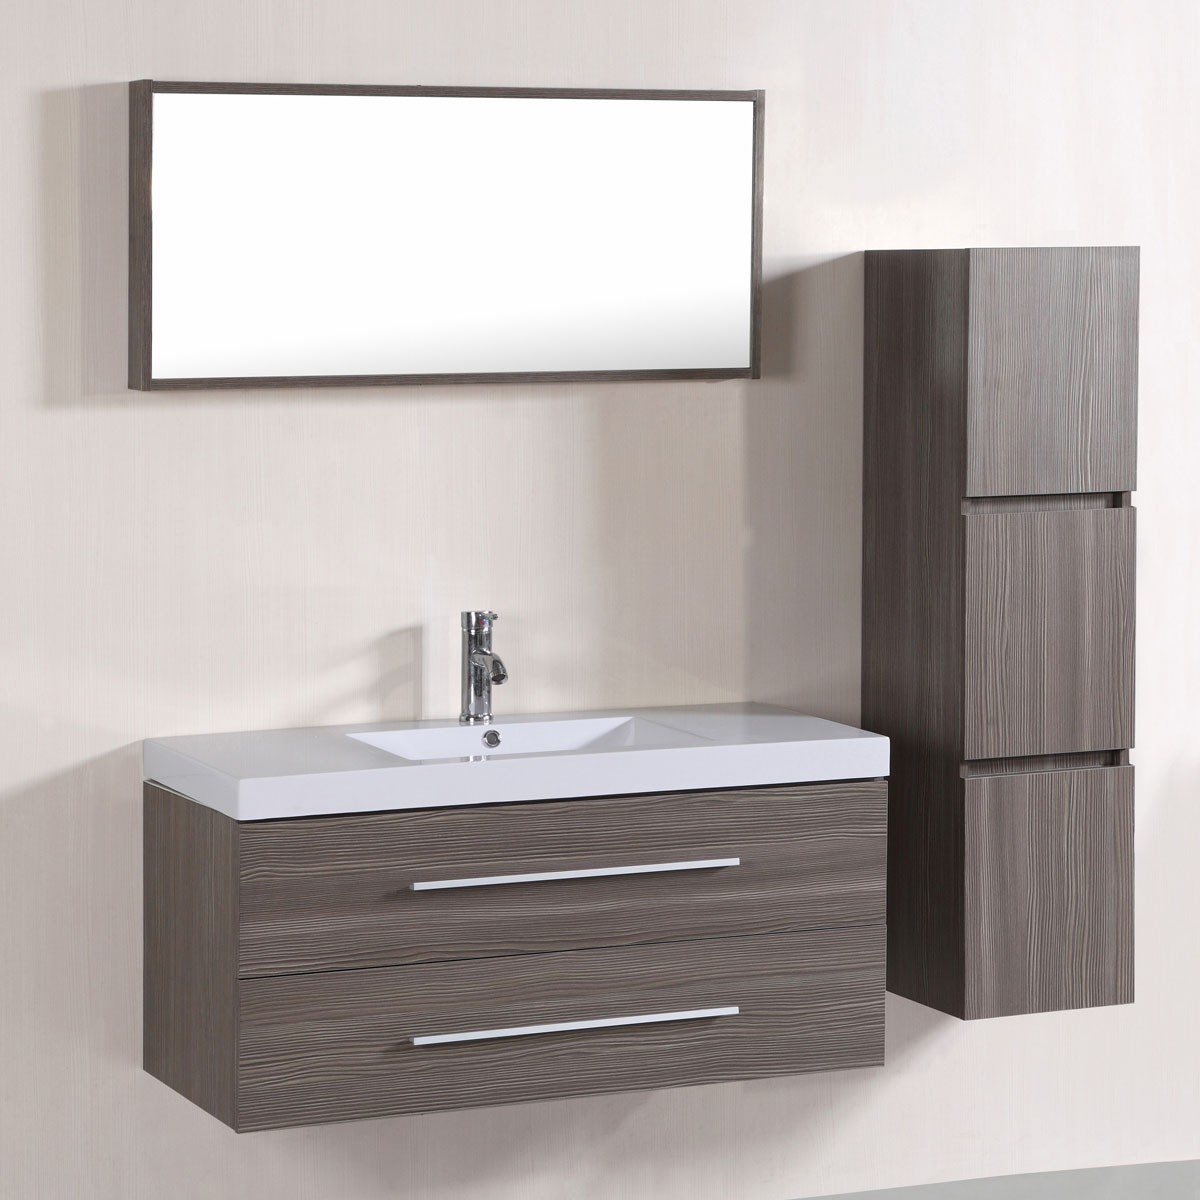 40 In. Wall-Mount Bathroom Vanity Set with Single Sink and Mirror (DK-T5167A)